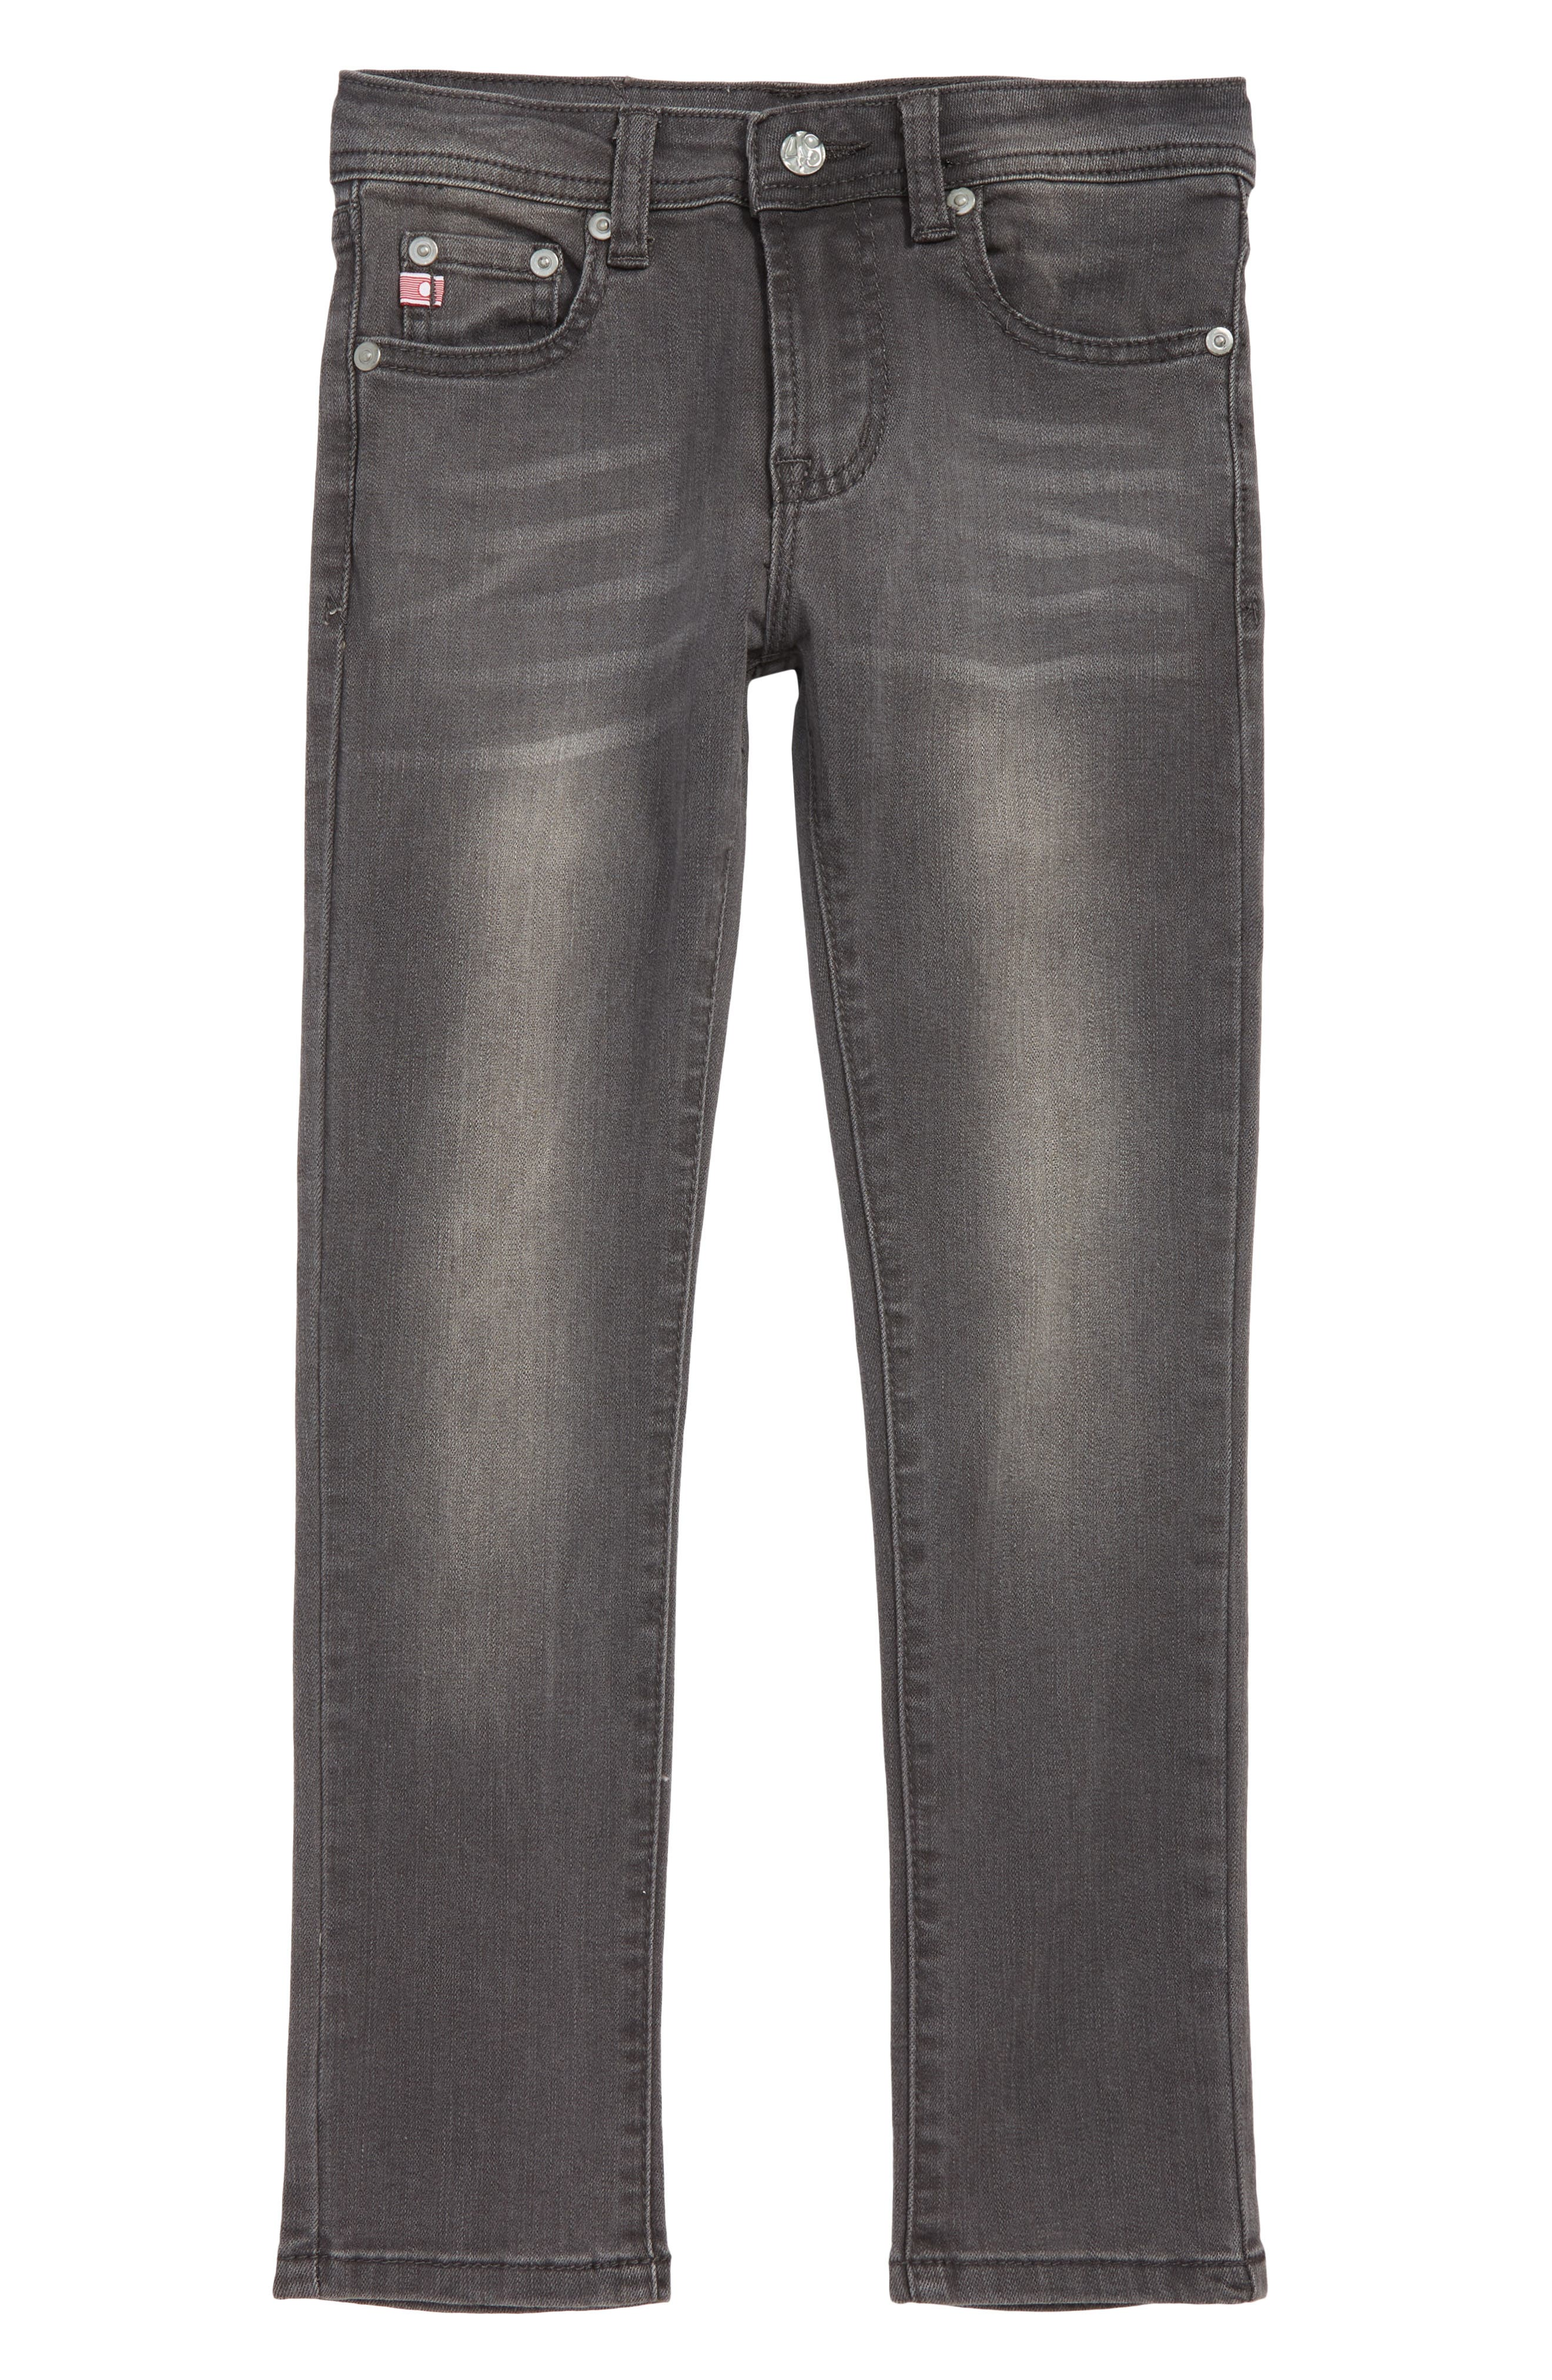 adriano goldschmied kids The Kingston Slim Jeans,                         Main,                         color, 097